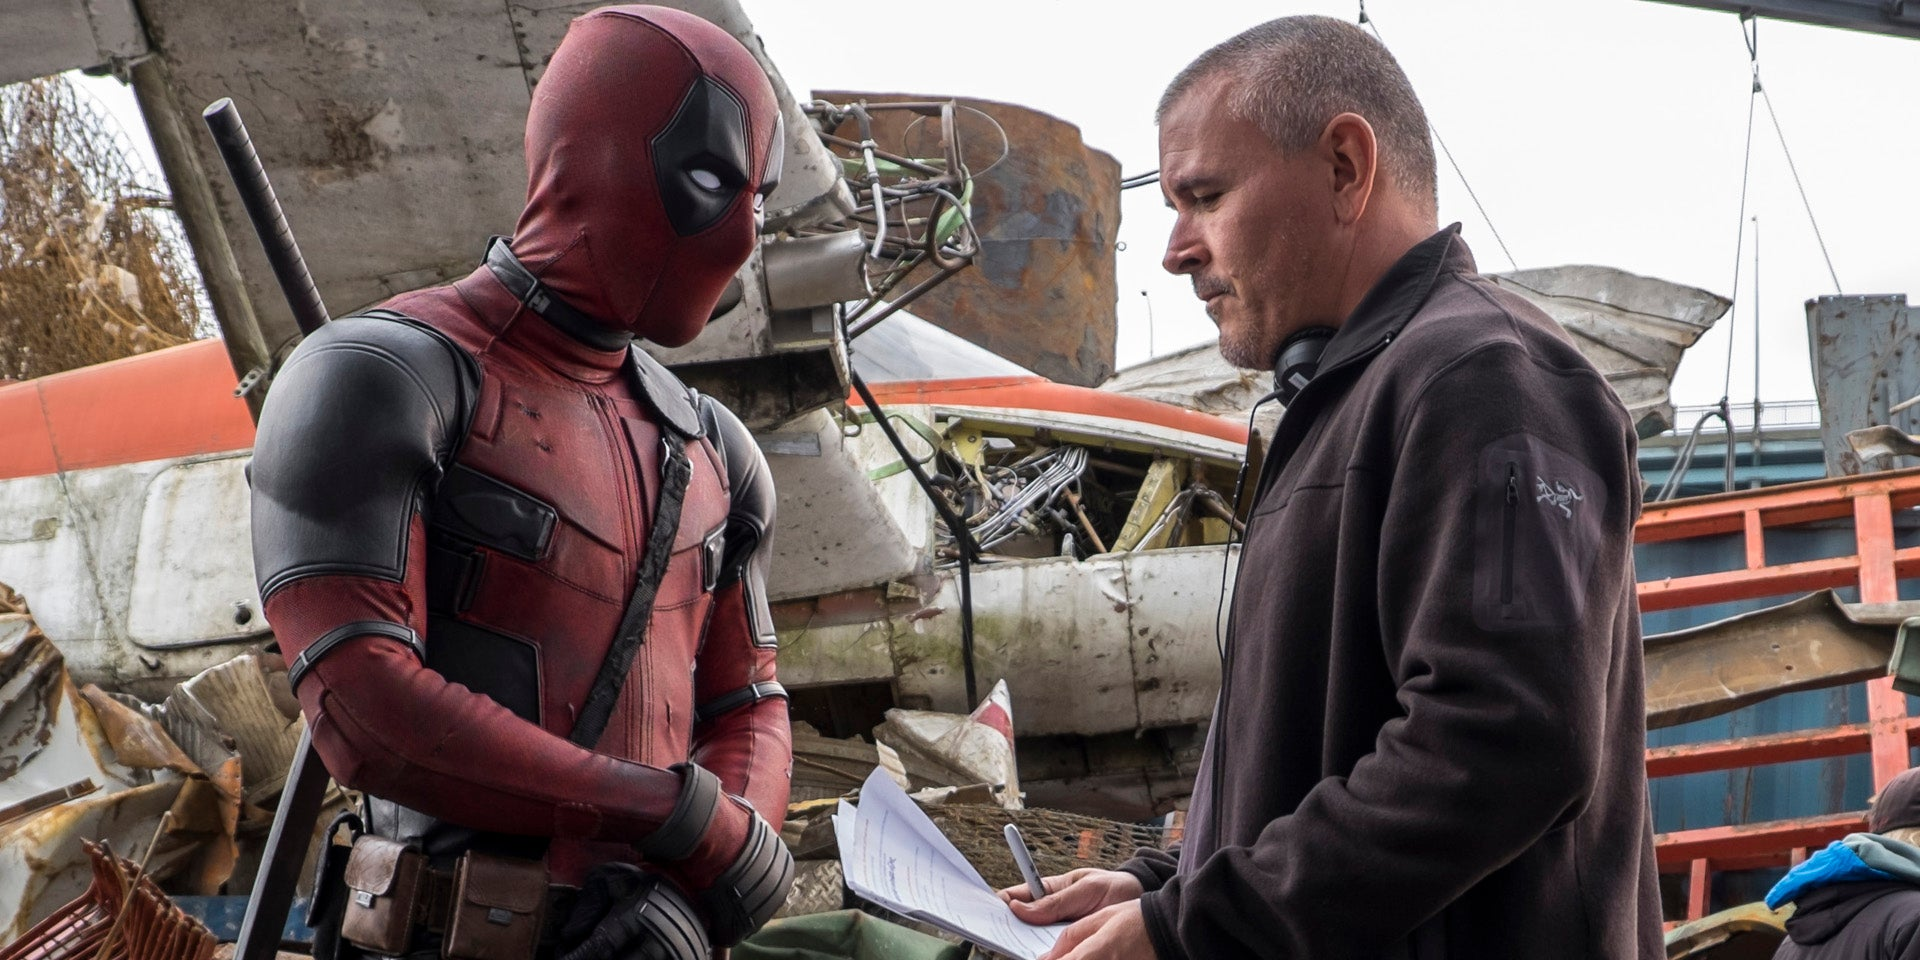 Something Doesn't Add Up About Tim Miller's Reason For Leaving Deadpool 2